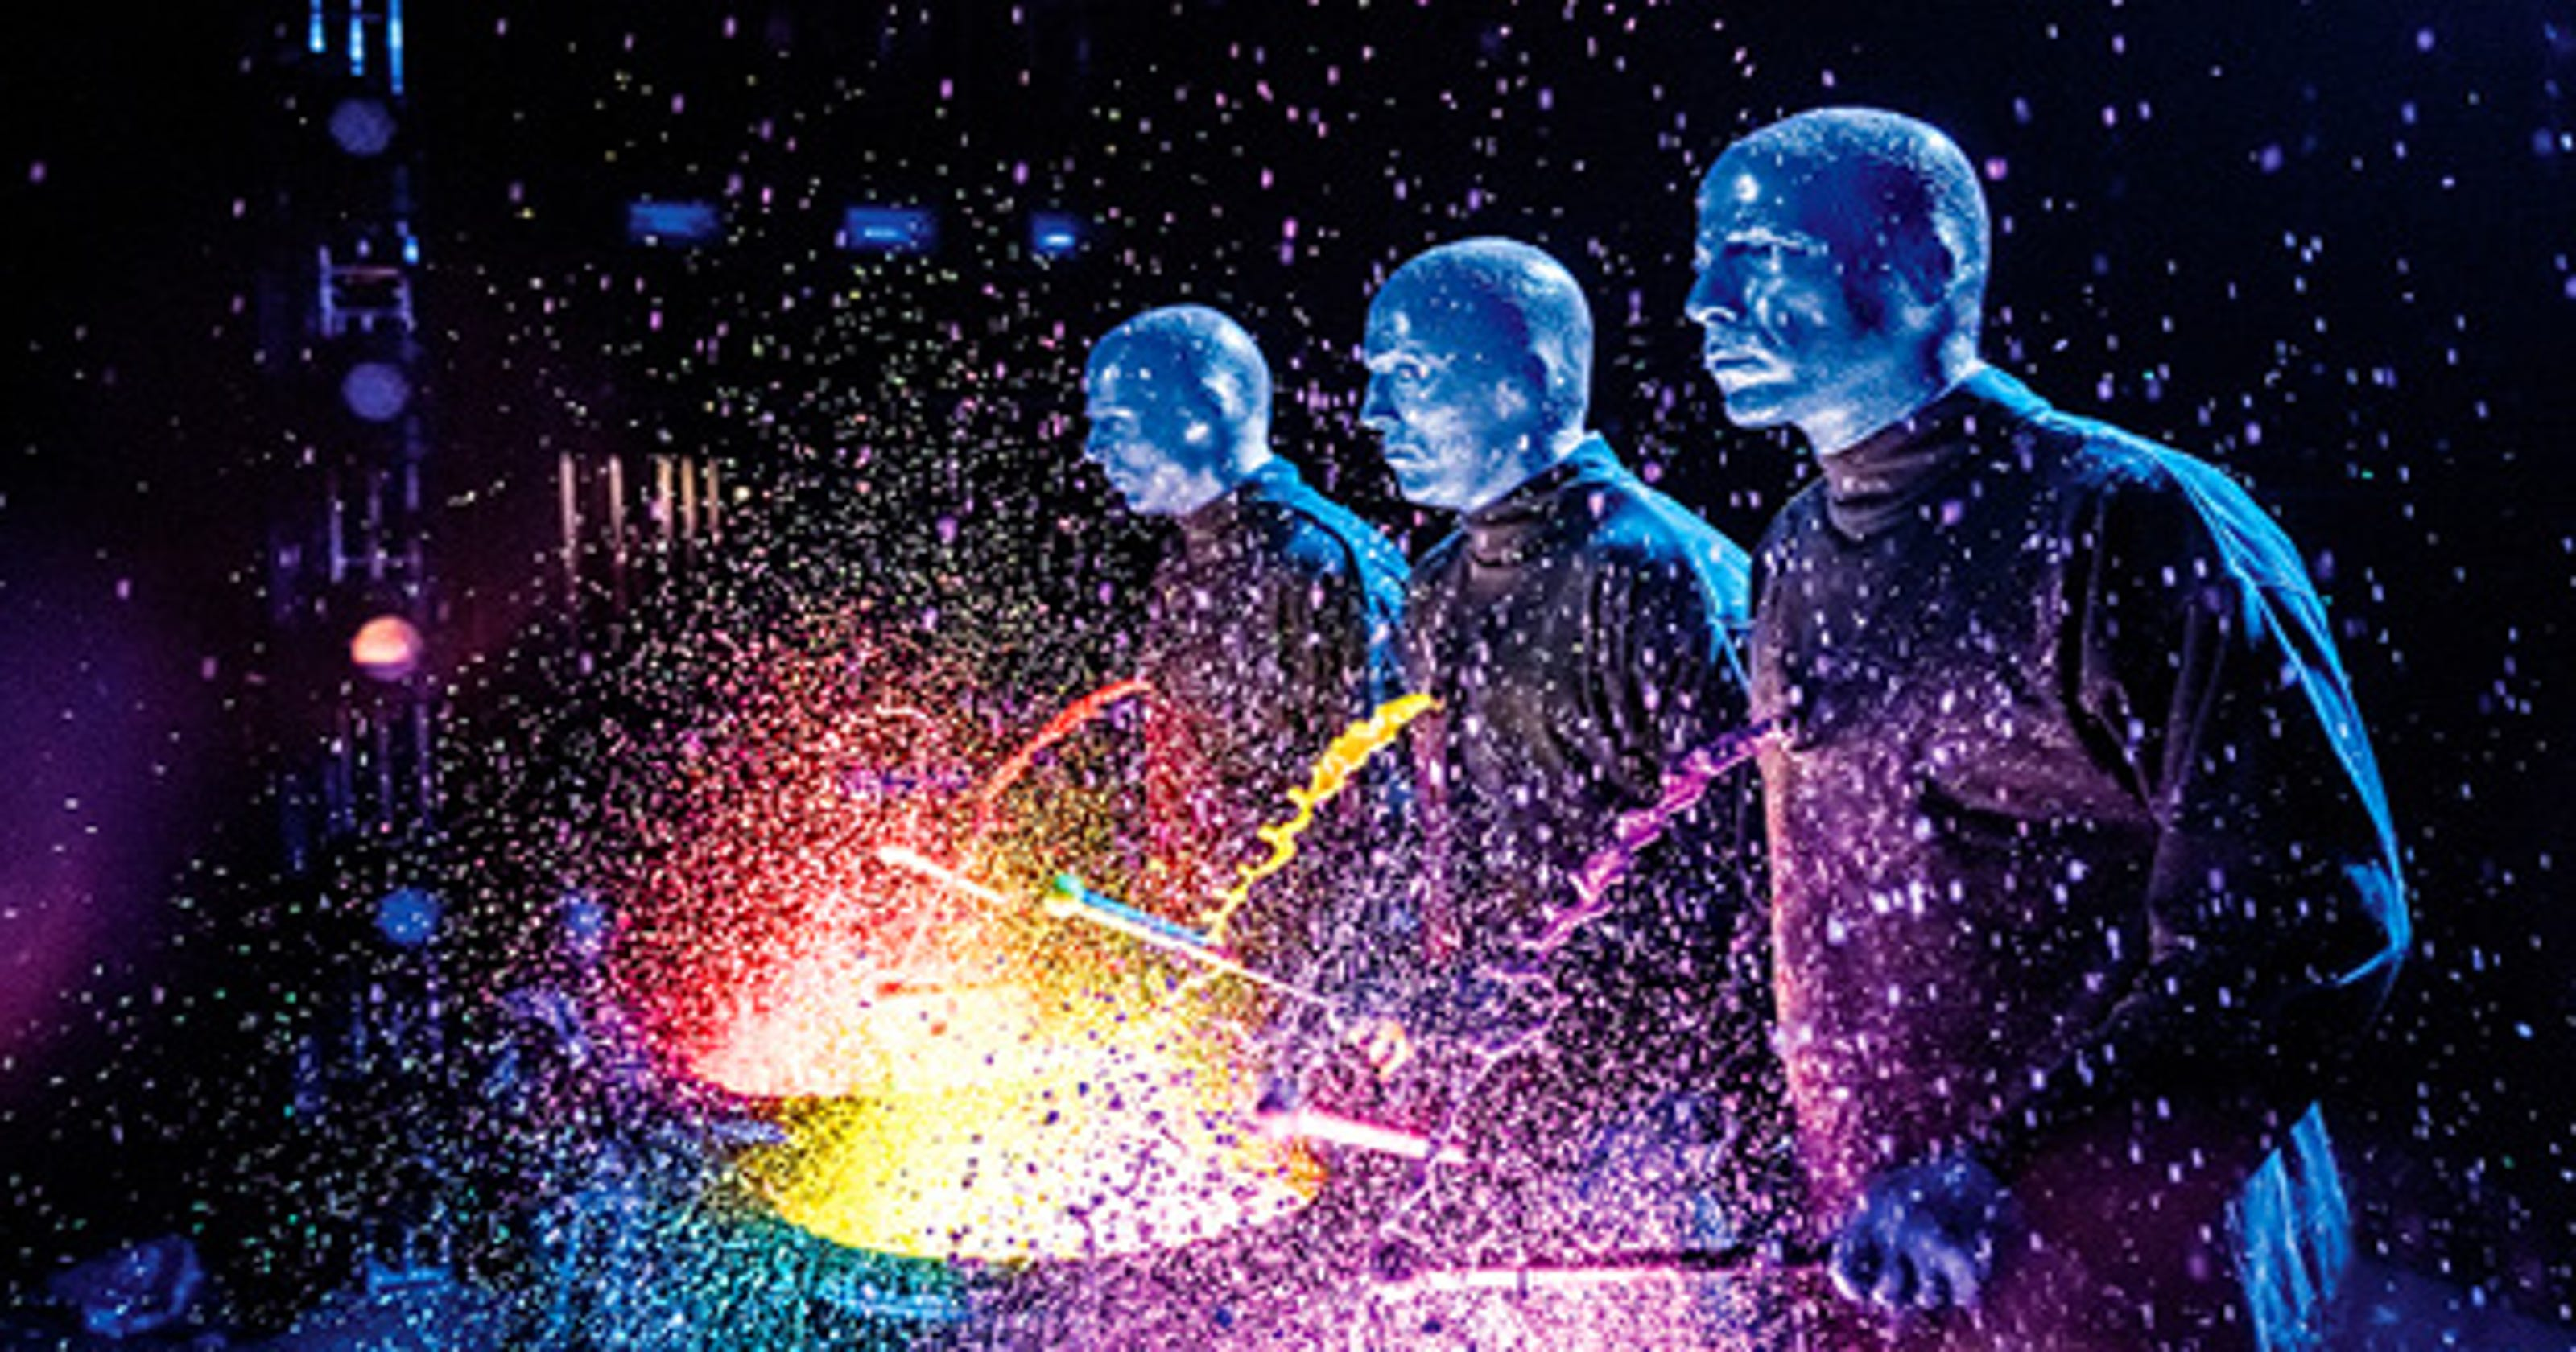 See the Blue Man Group from $64!